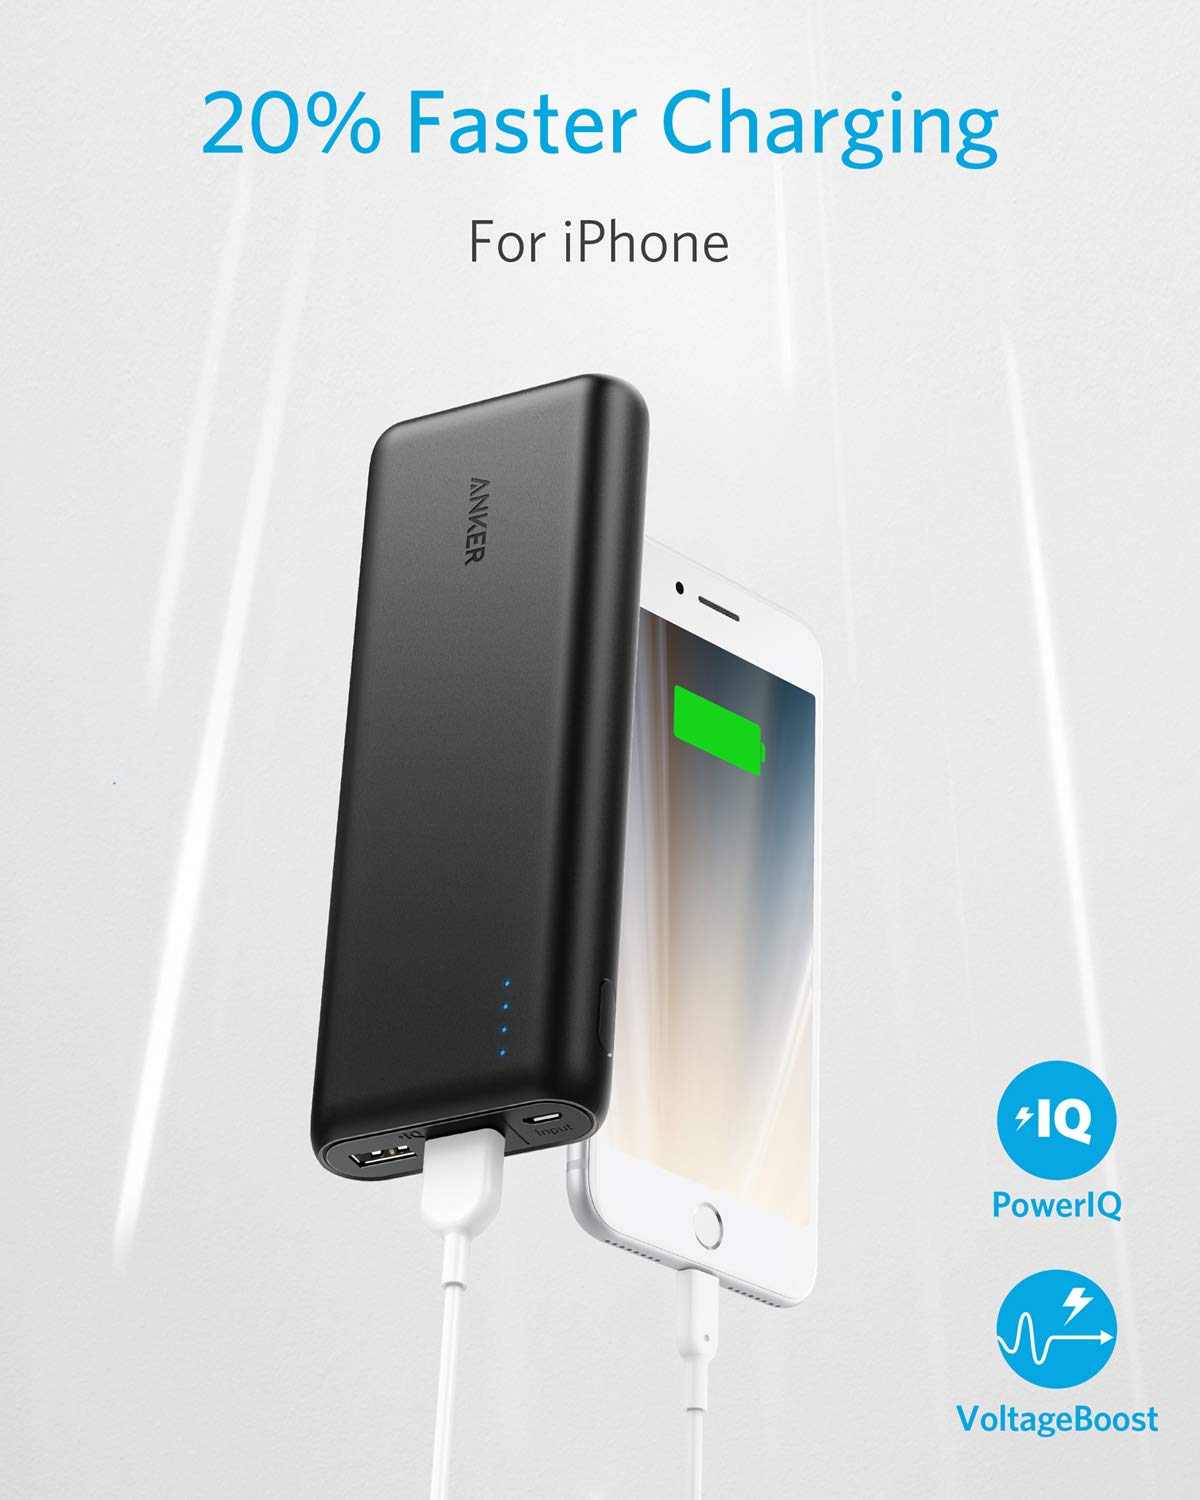 Portable Charger Anker PowerCore 20100mAh - Ultra High Capacity Power Bank with 4.8A Output, External Battery Pack for iPhone, iPad & Samsung Galaxy & More (Black) by Anker (Image #3)